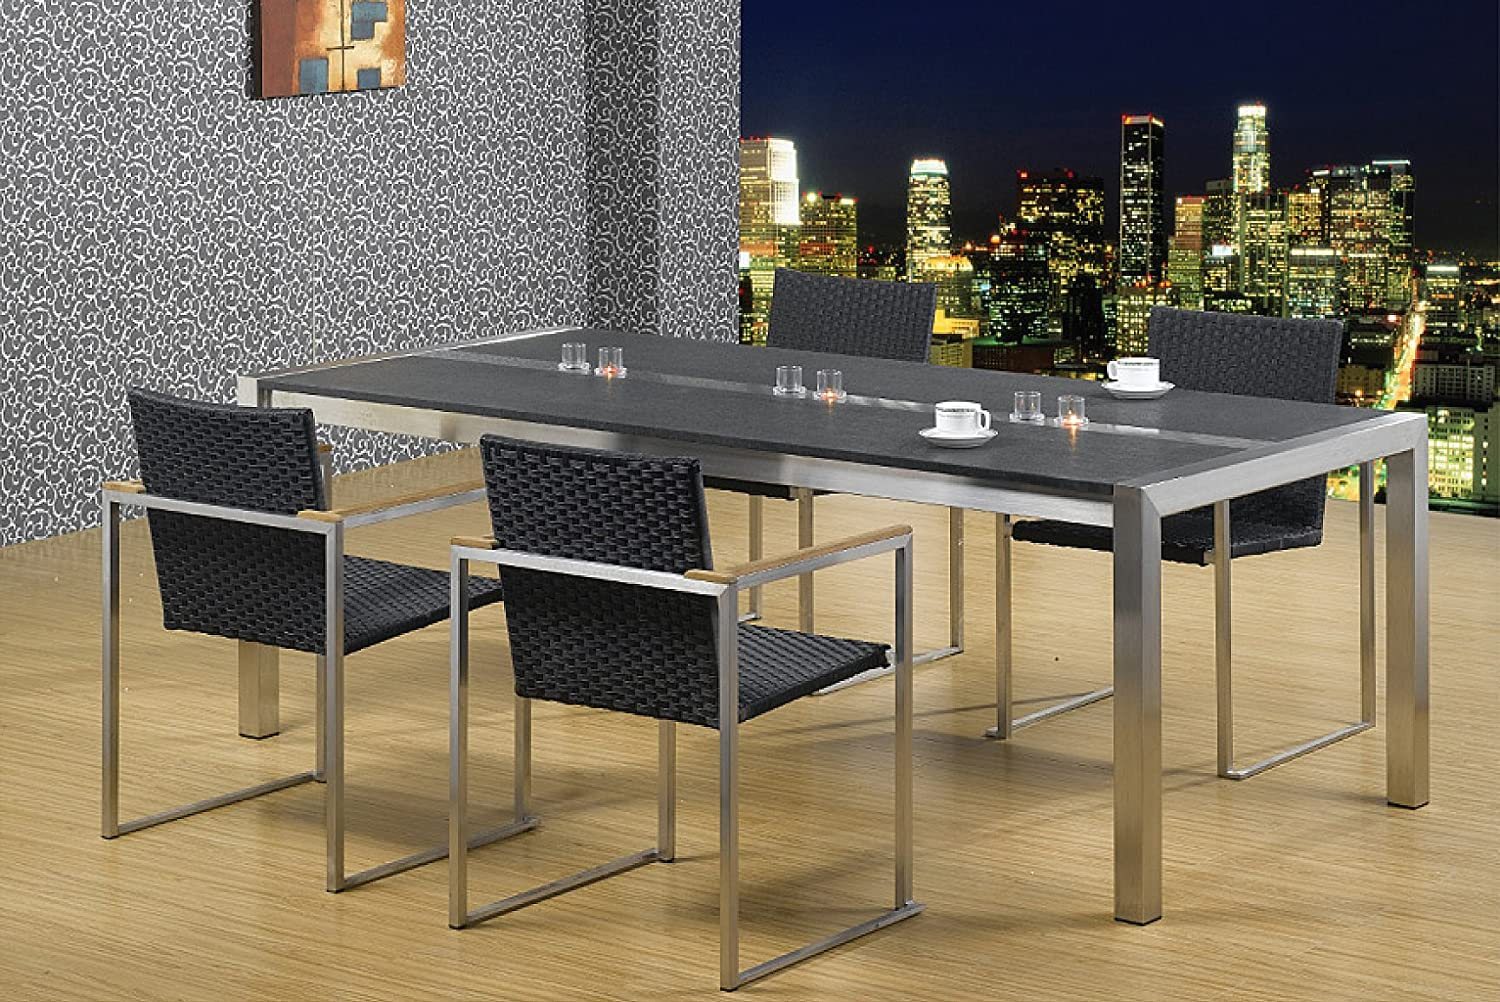 Szagato Dining Room Table Stainless Steel with Granite Top L x W 9 x 9  cm Brand Living Room Table, Dining Table, Garden Table, Designer Table